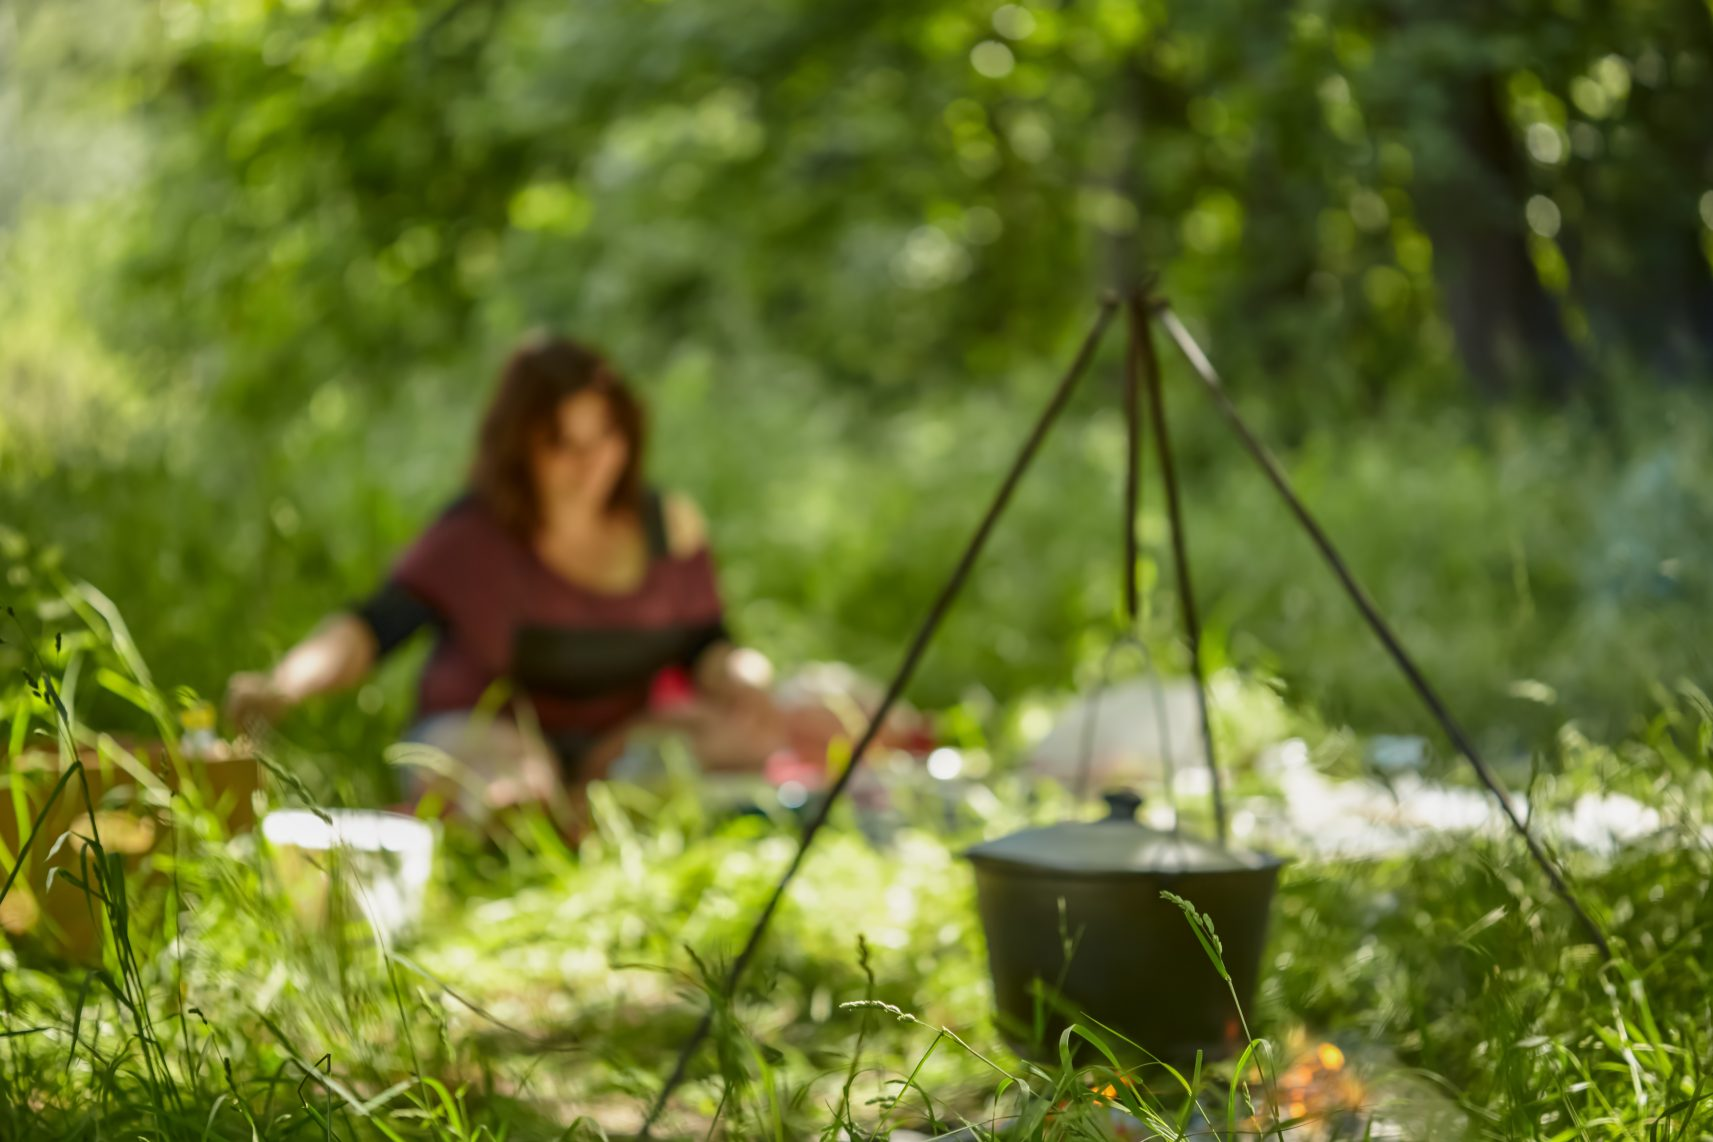 Defocused picnic background. Blurred background woman and bowler hat on fire in summer forest. Cooking food in a pot on a fire in nature. Cooking in nature